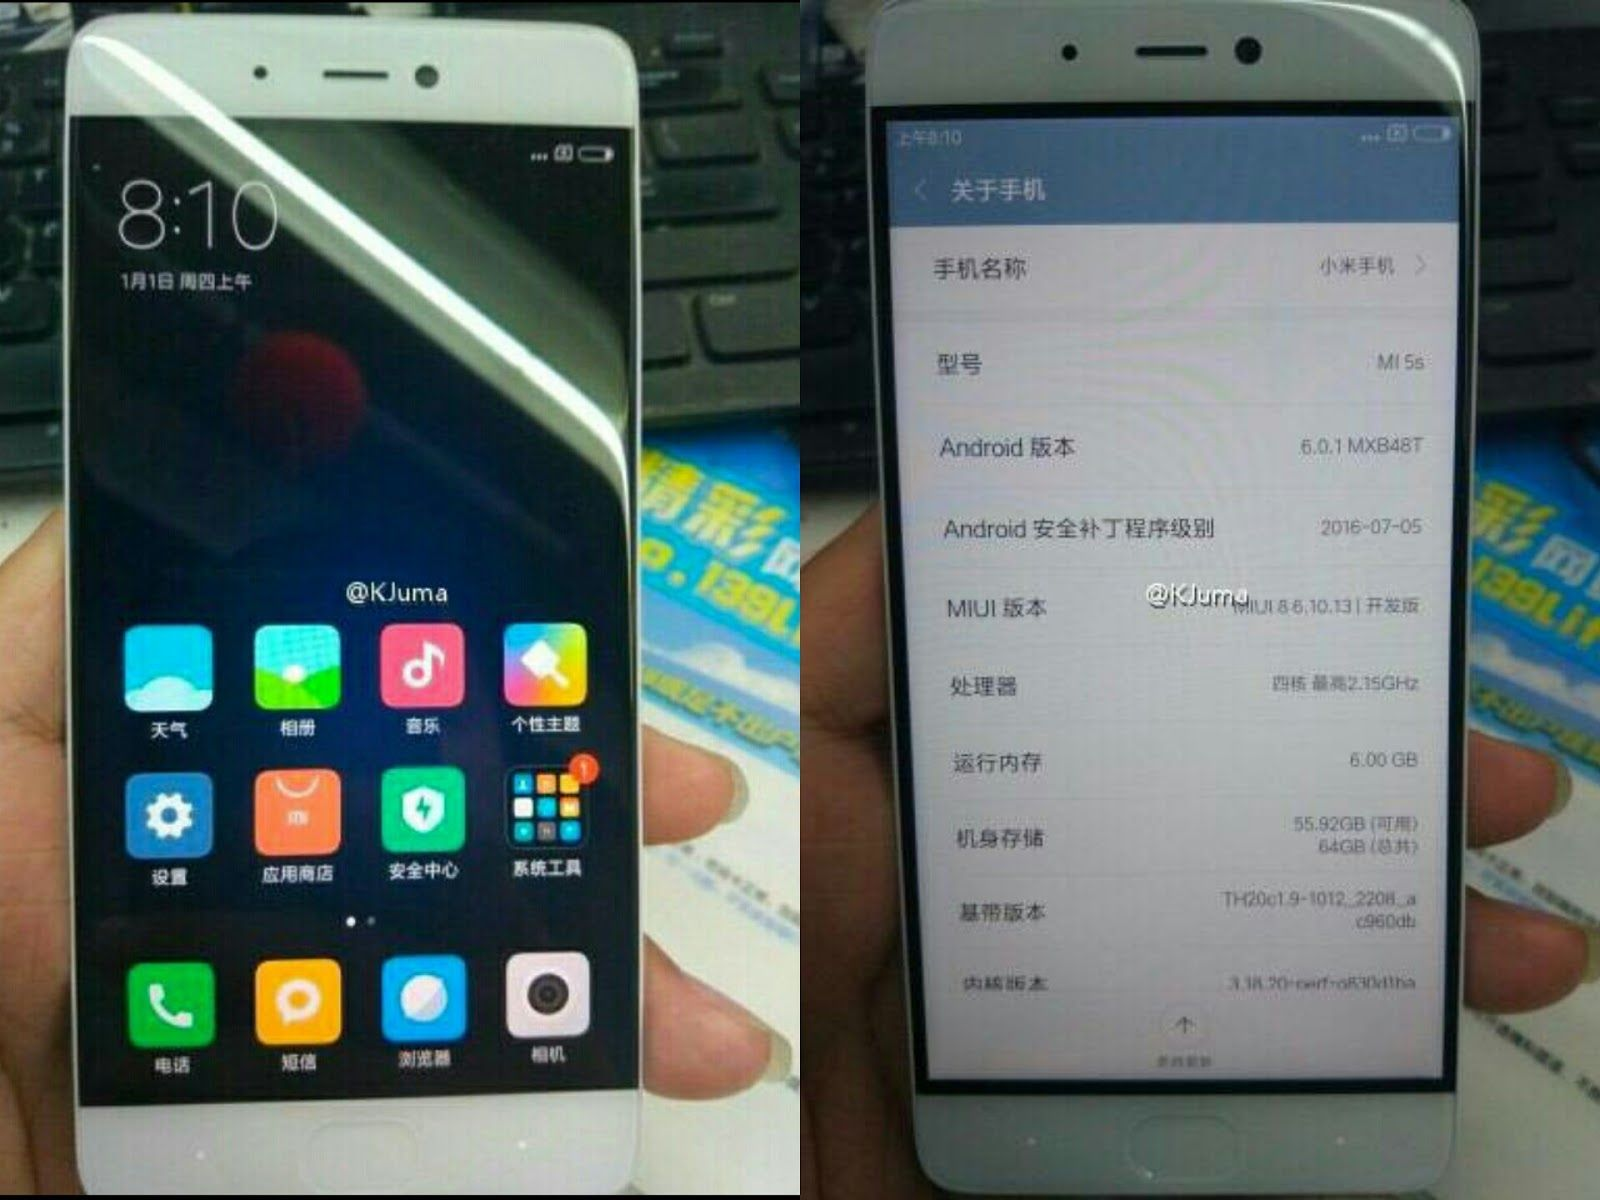 6GB RAM Xiaomi Mi 5s Model Leaks Could Launch Soon android google